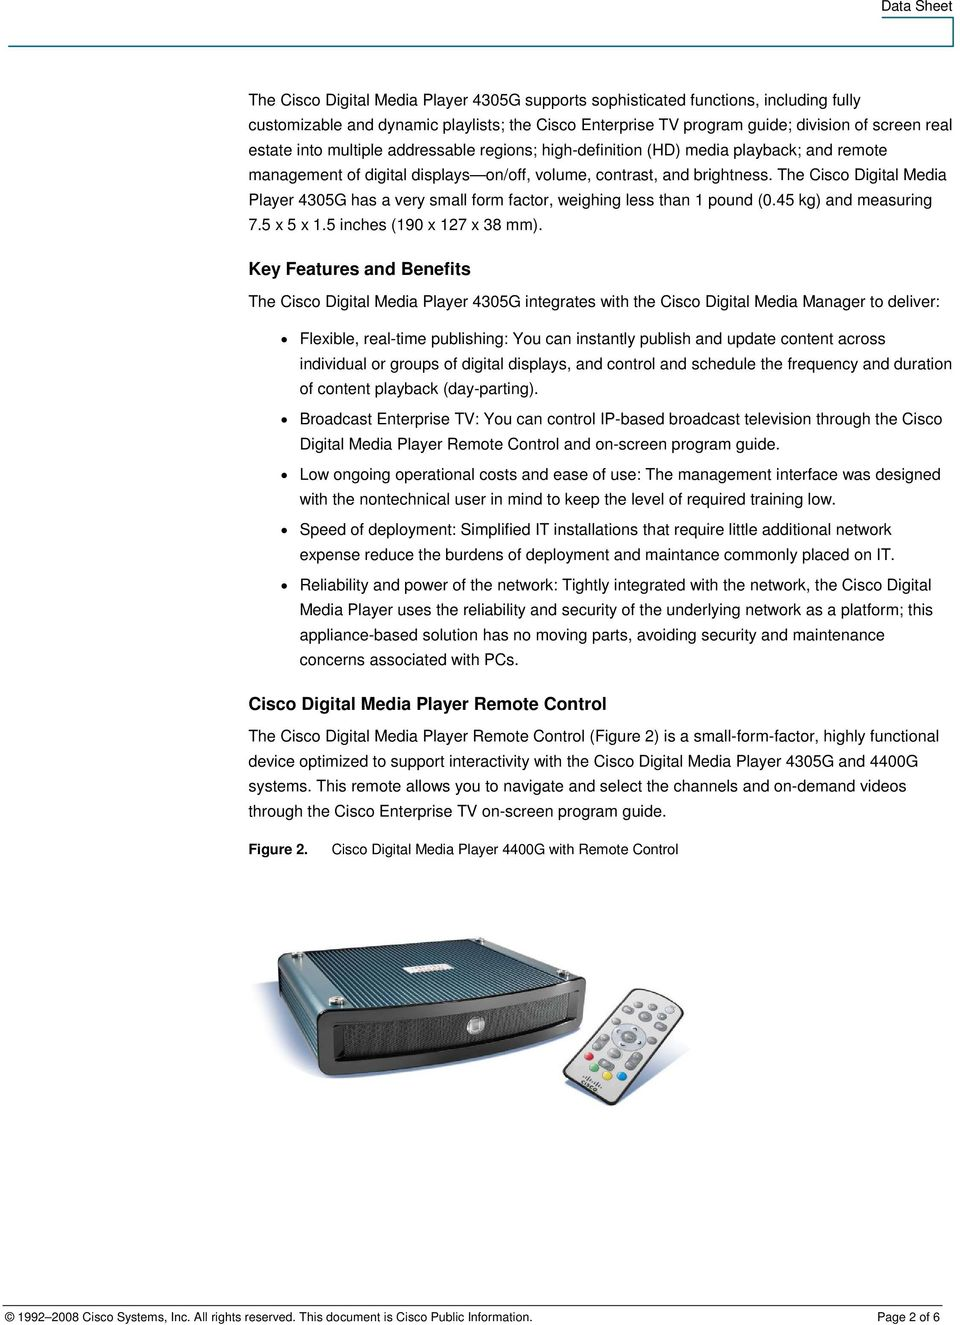 The Cisco Digital Media Player 4305G has a very small form factor, weighing less than 1 pound (0.45 kg) and measuring 7.5 x 5 x 1.5 inches (190 x 127 x 38 mm).